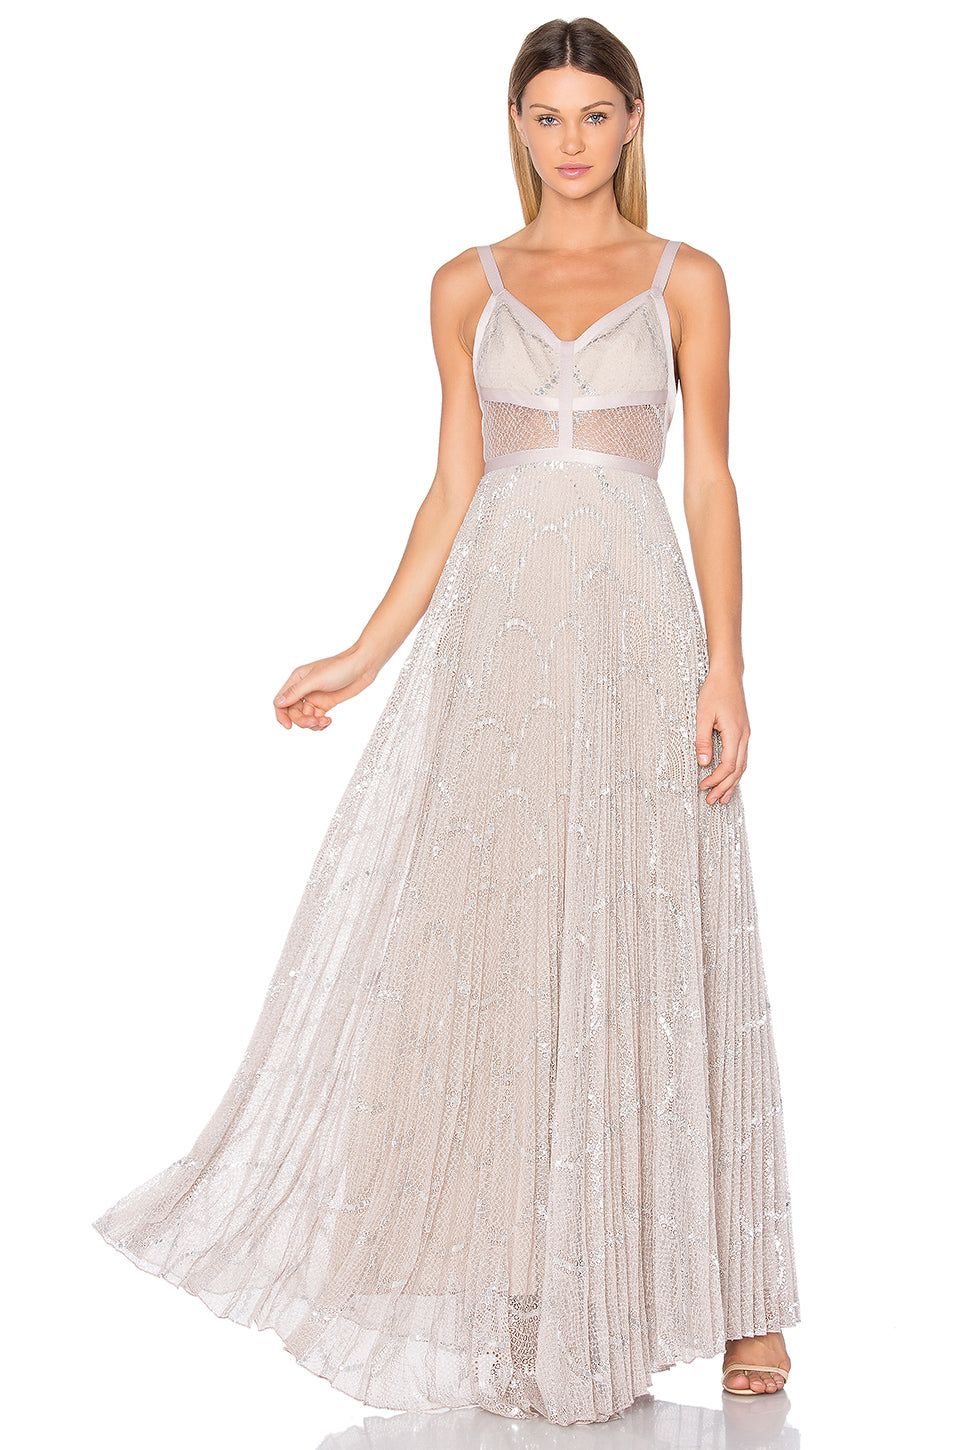 alexis silver blush gown – 10 wooster